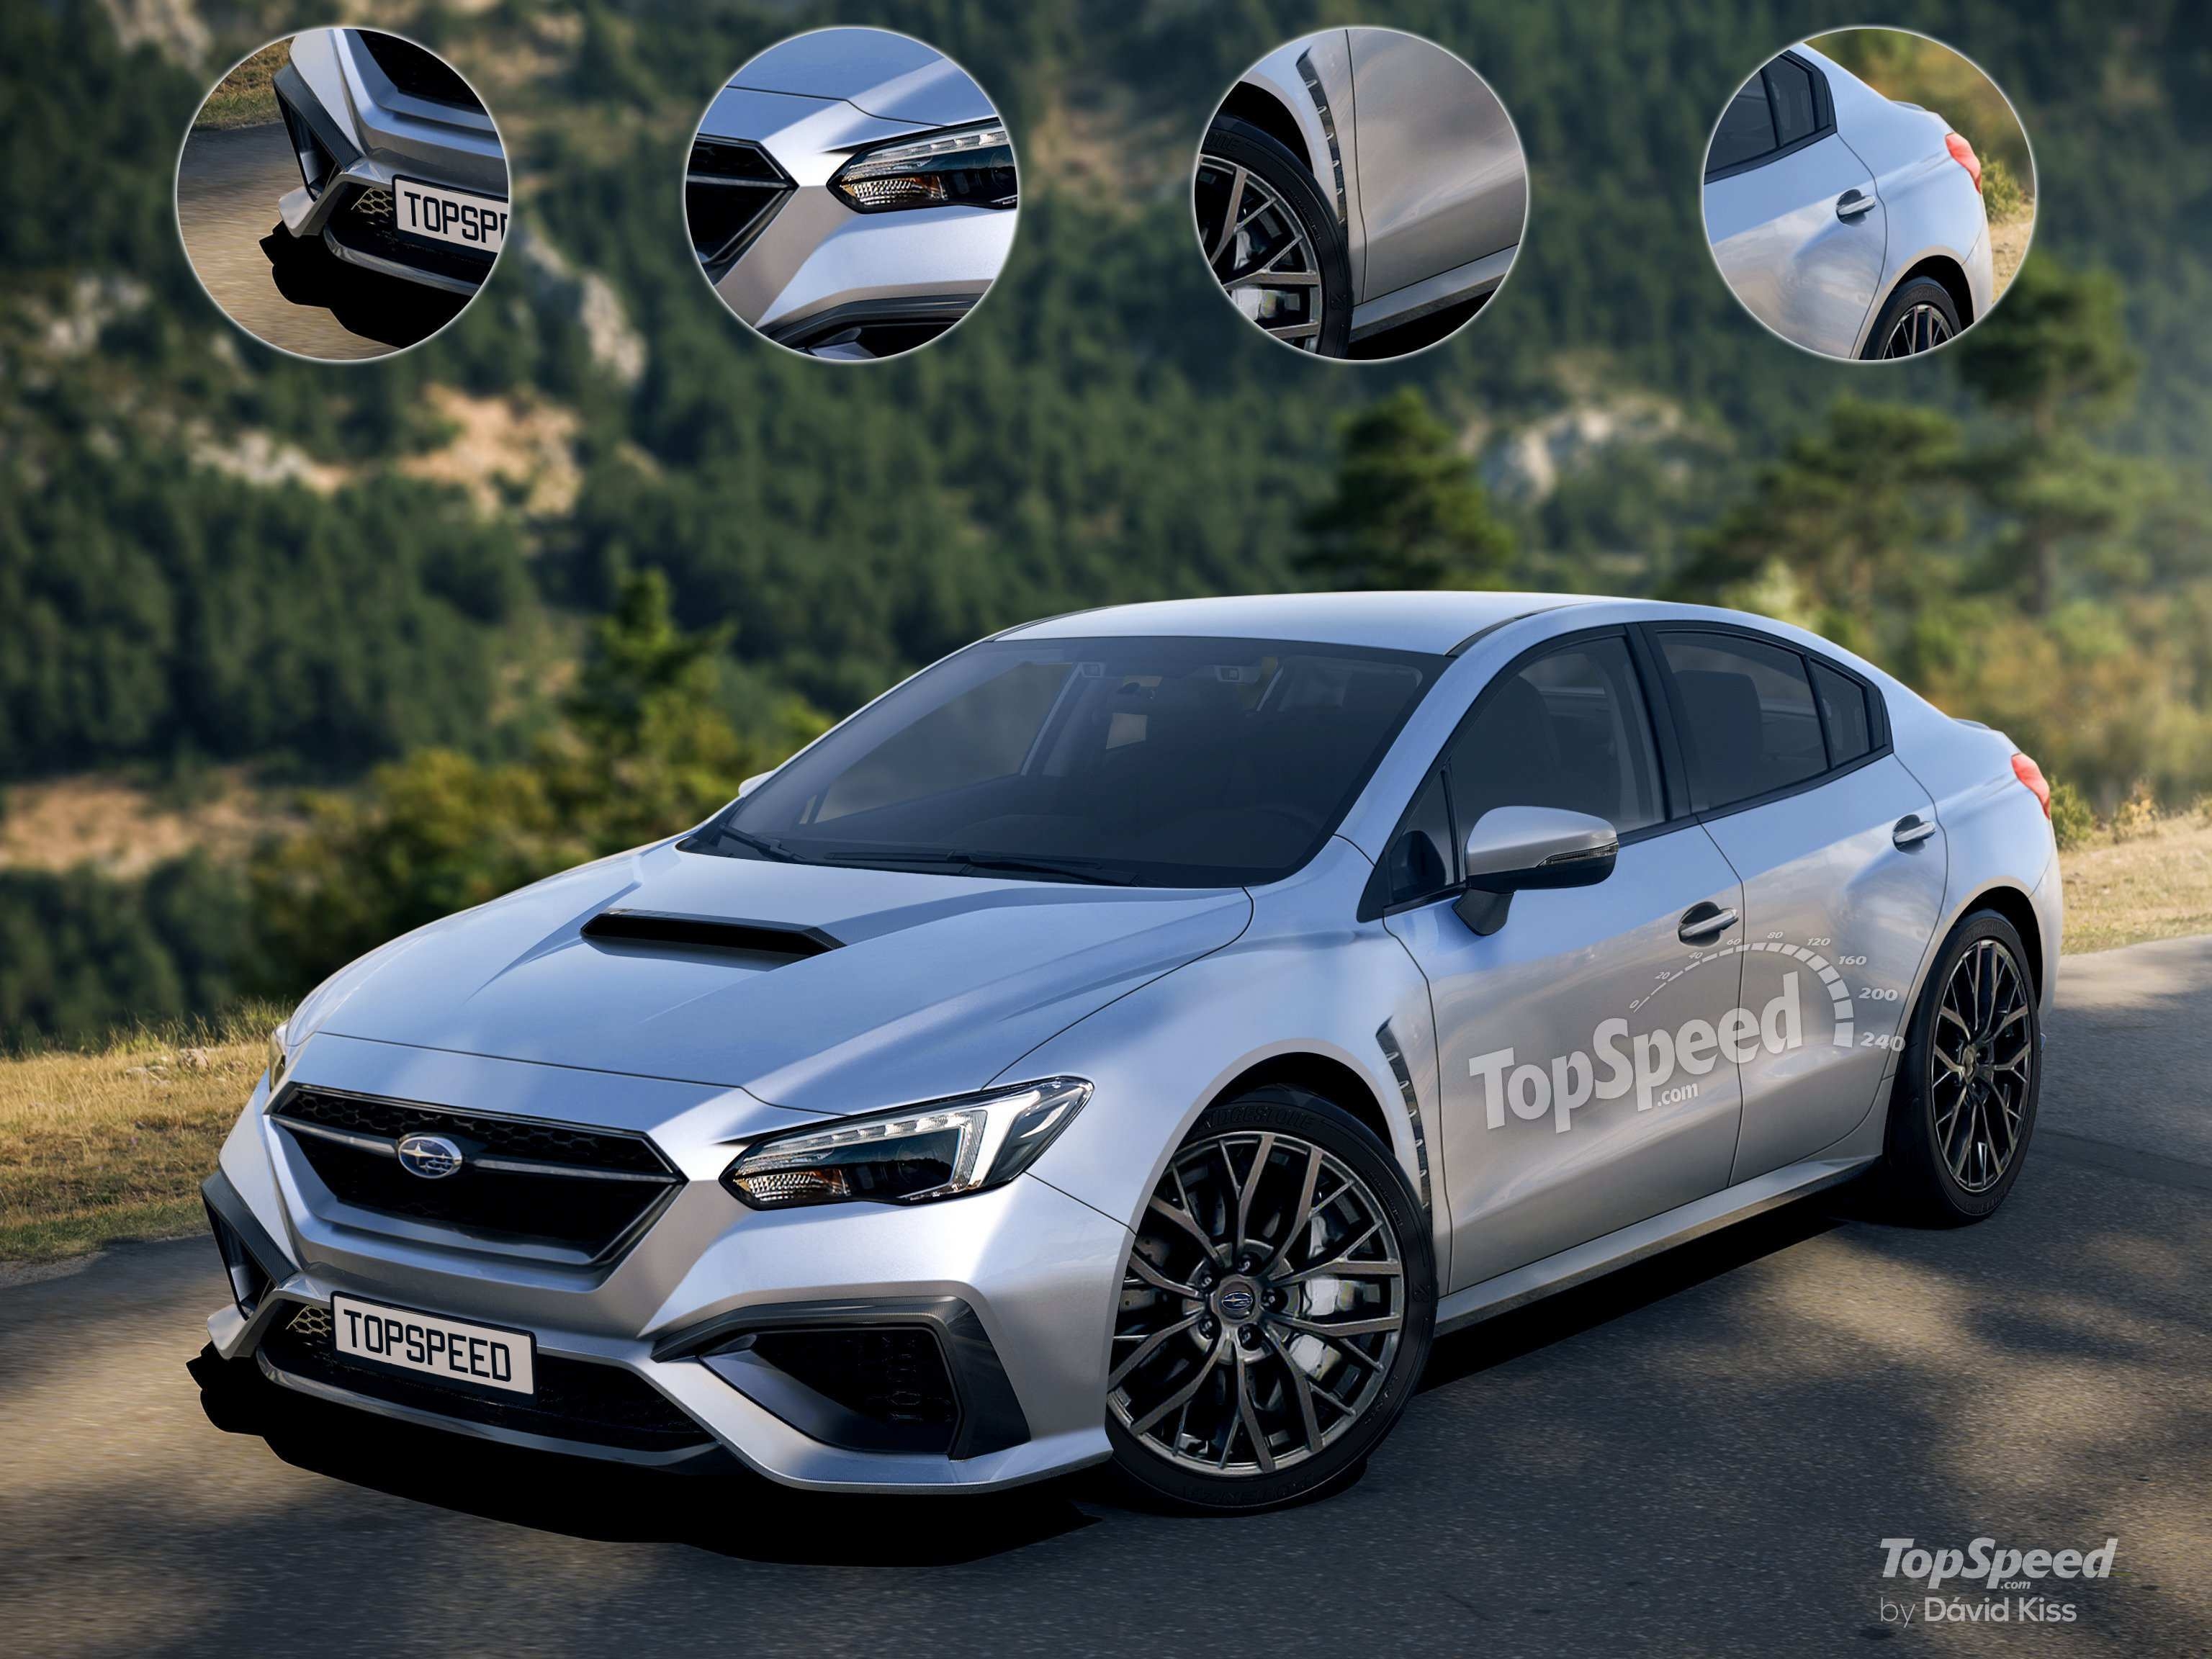 40 Great 2020 Subaru Wrx Redesign First Drive with 2020 Subaru Wrx Redesign